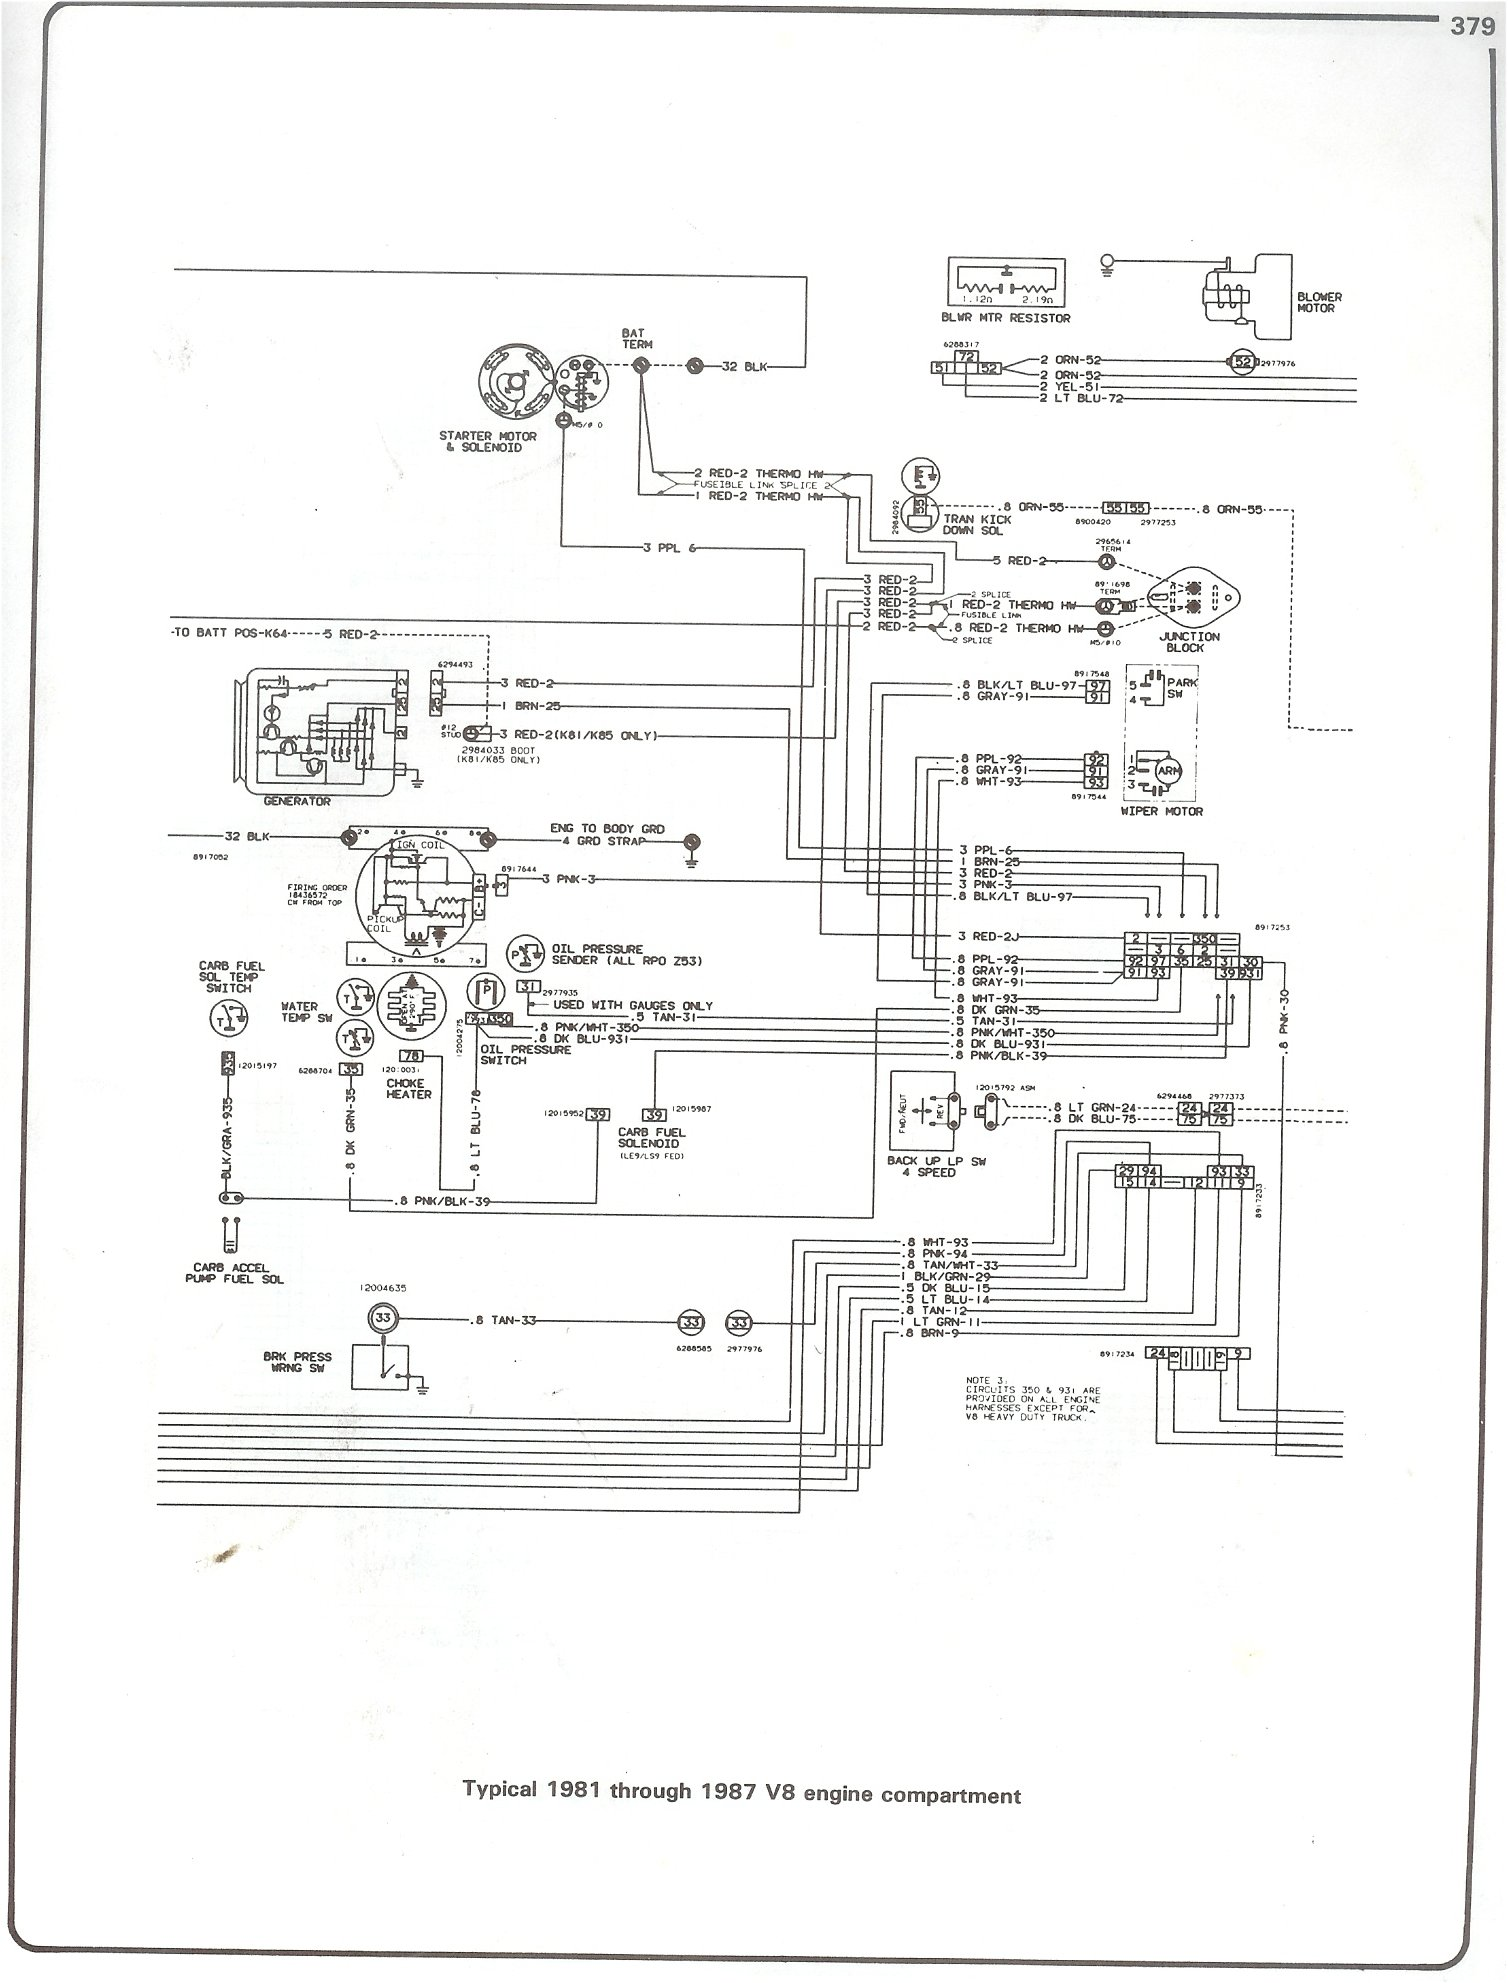 81 87_V8_engine complete 73 87 wiring diagrams truck wiring diagrams at bakdesigns.co